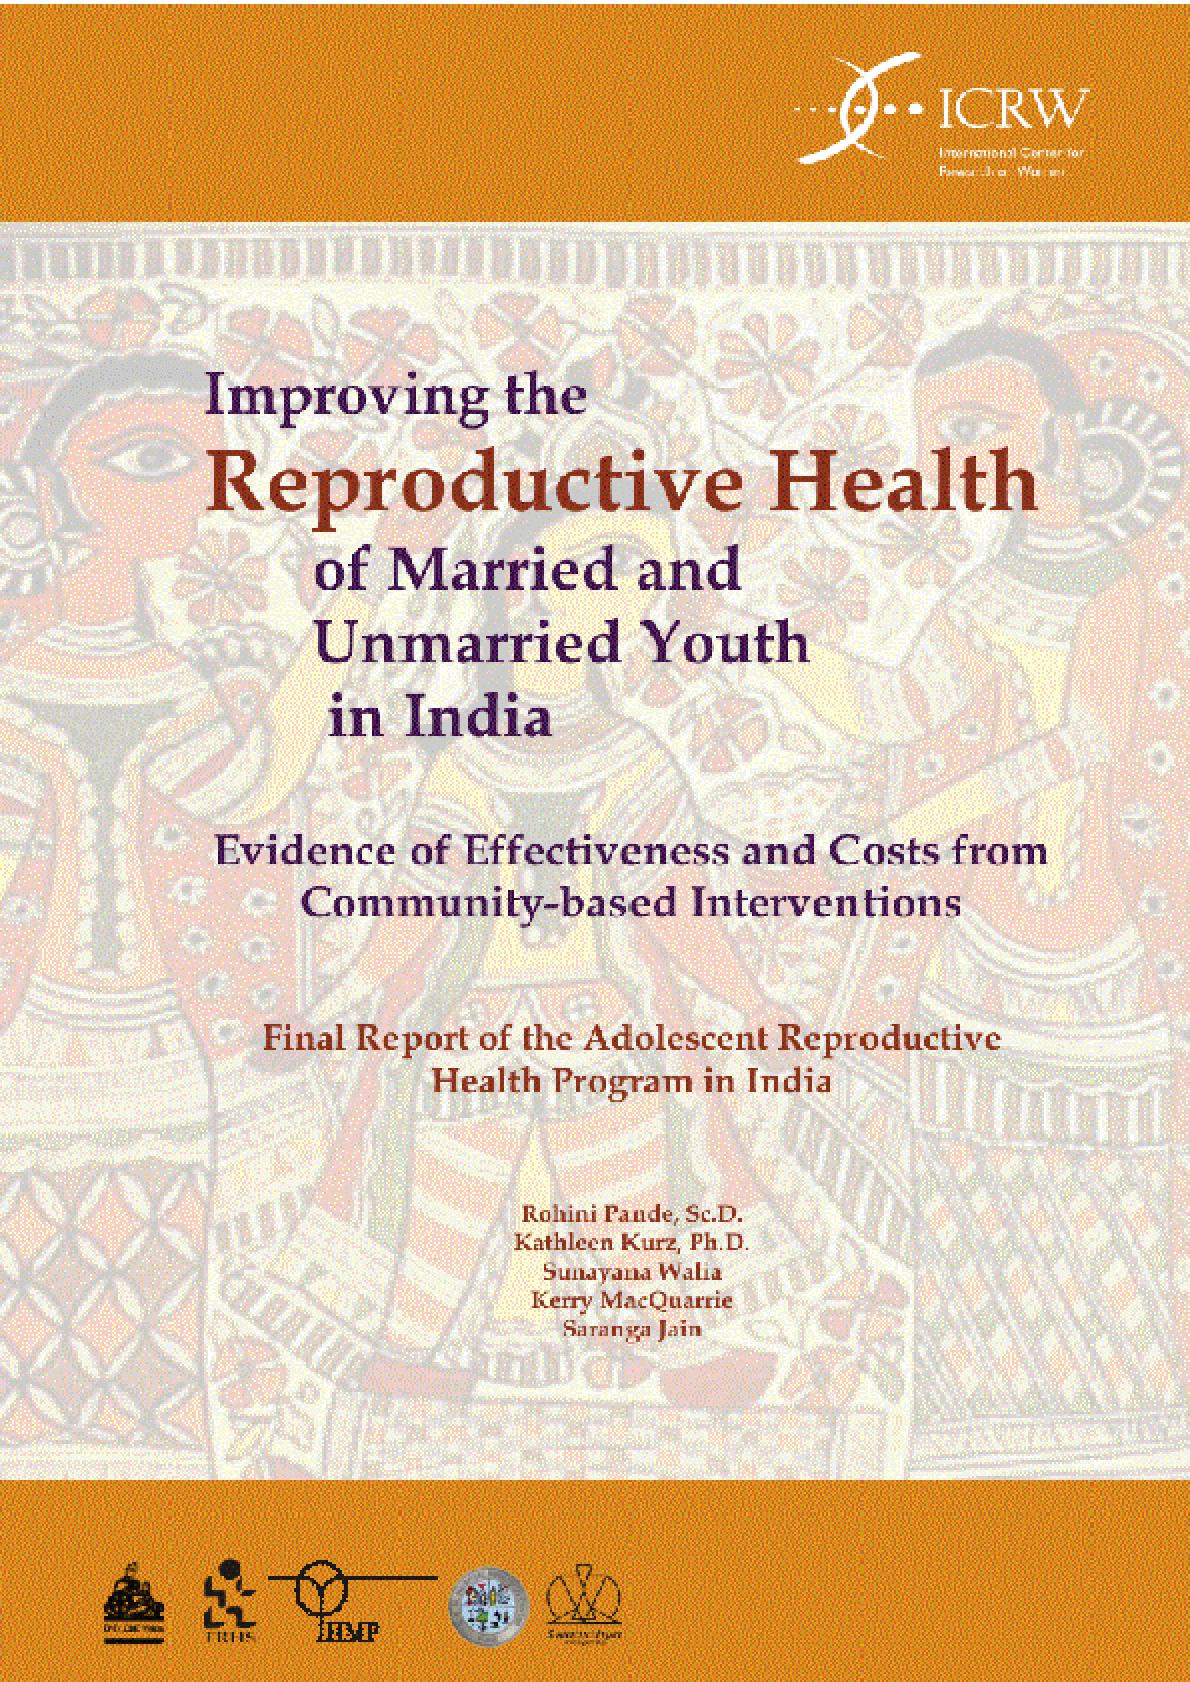 Improving the Reproductive Health of Married and Unmarried Youth in India